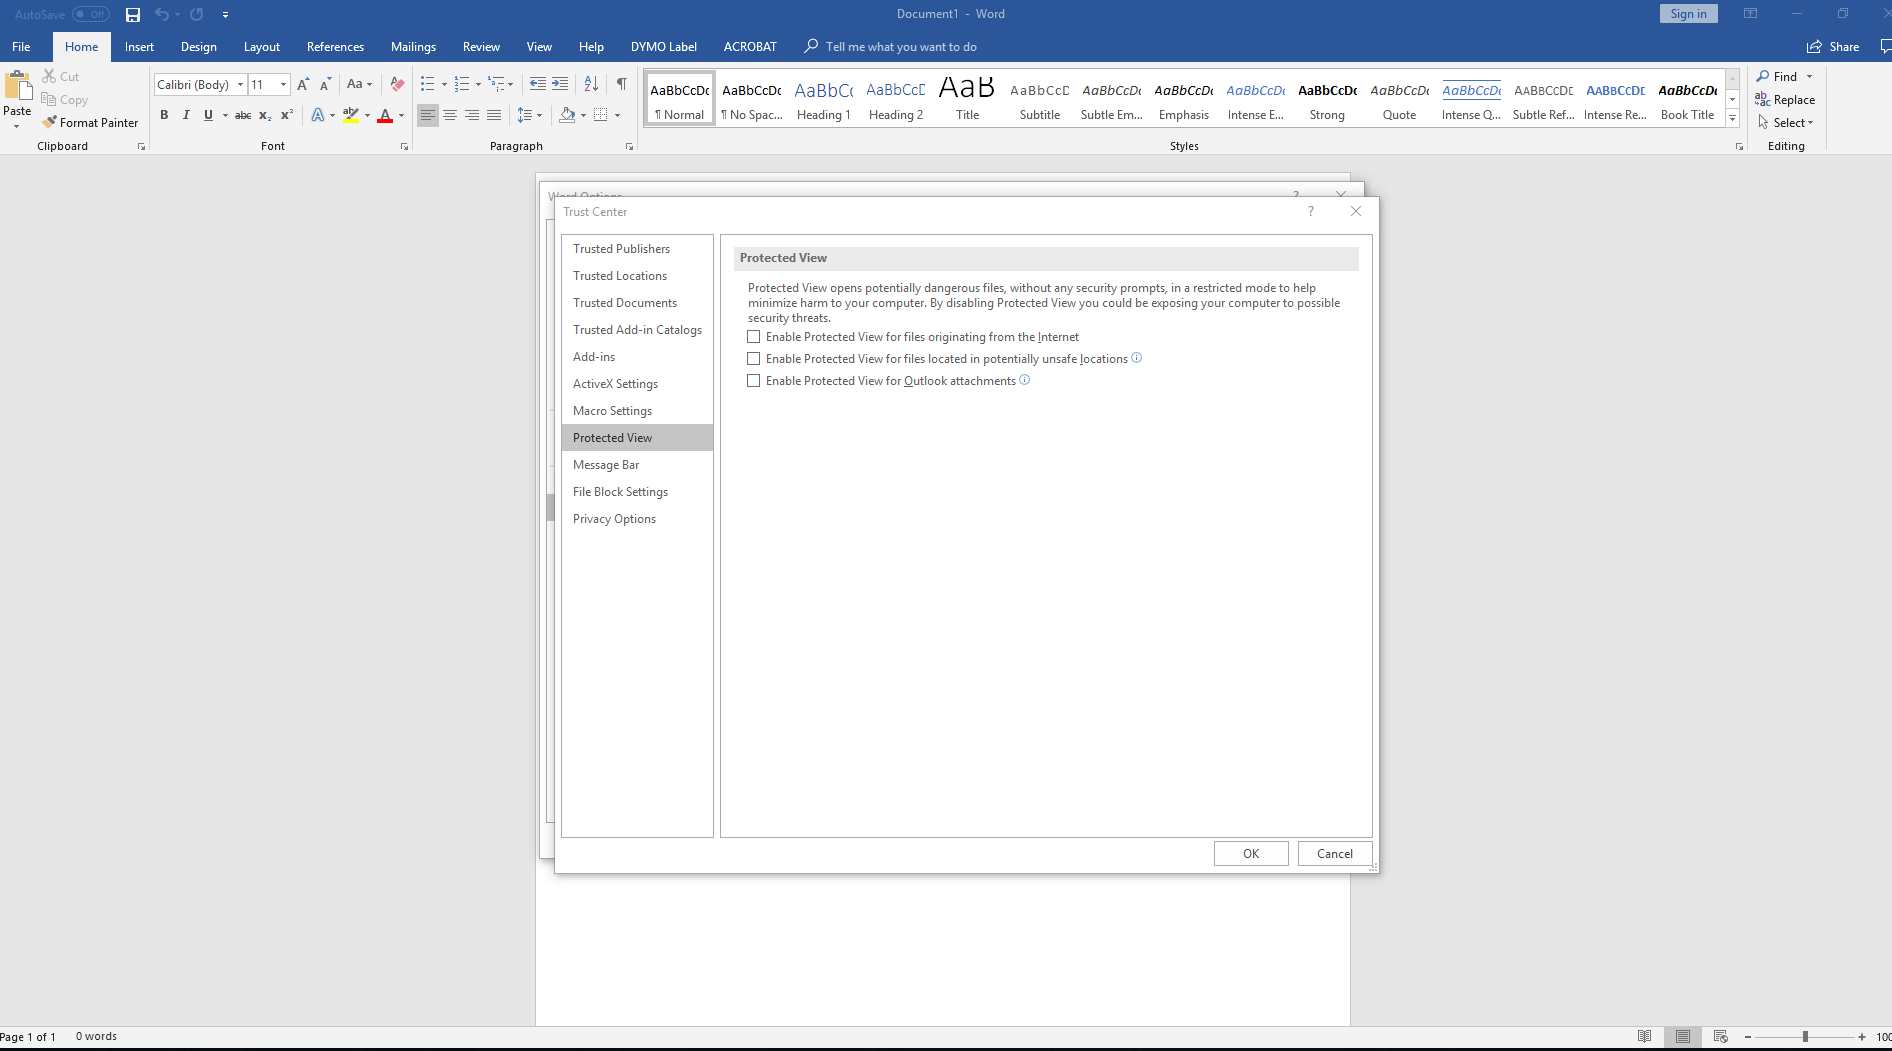 ms excel 2013 protected view